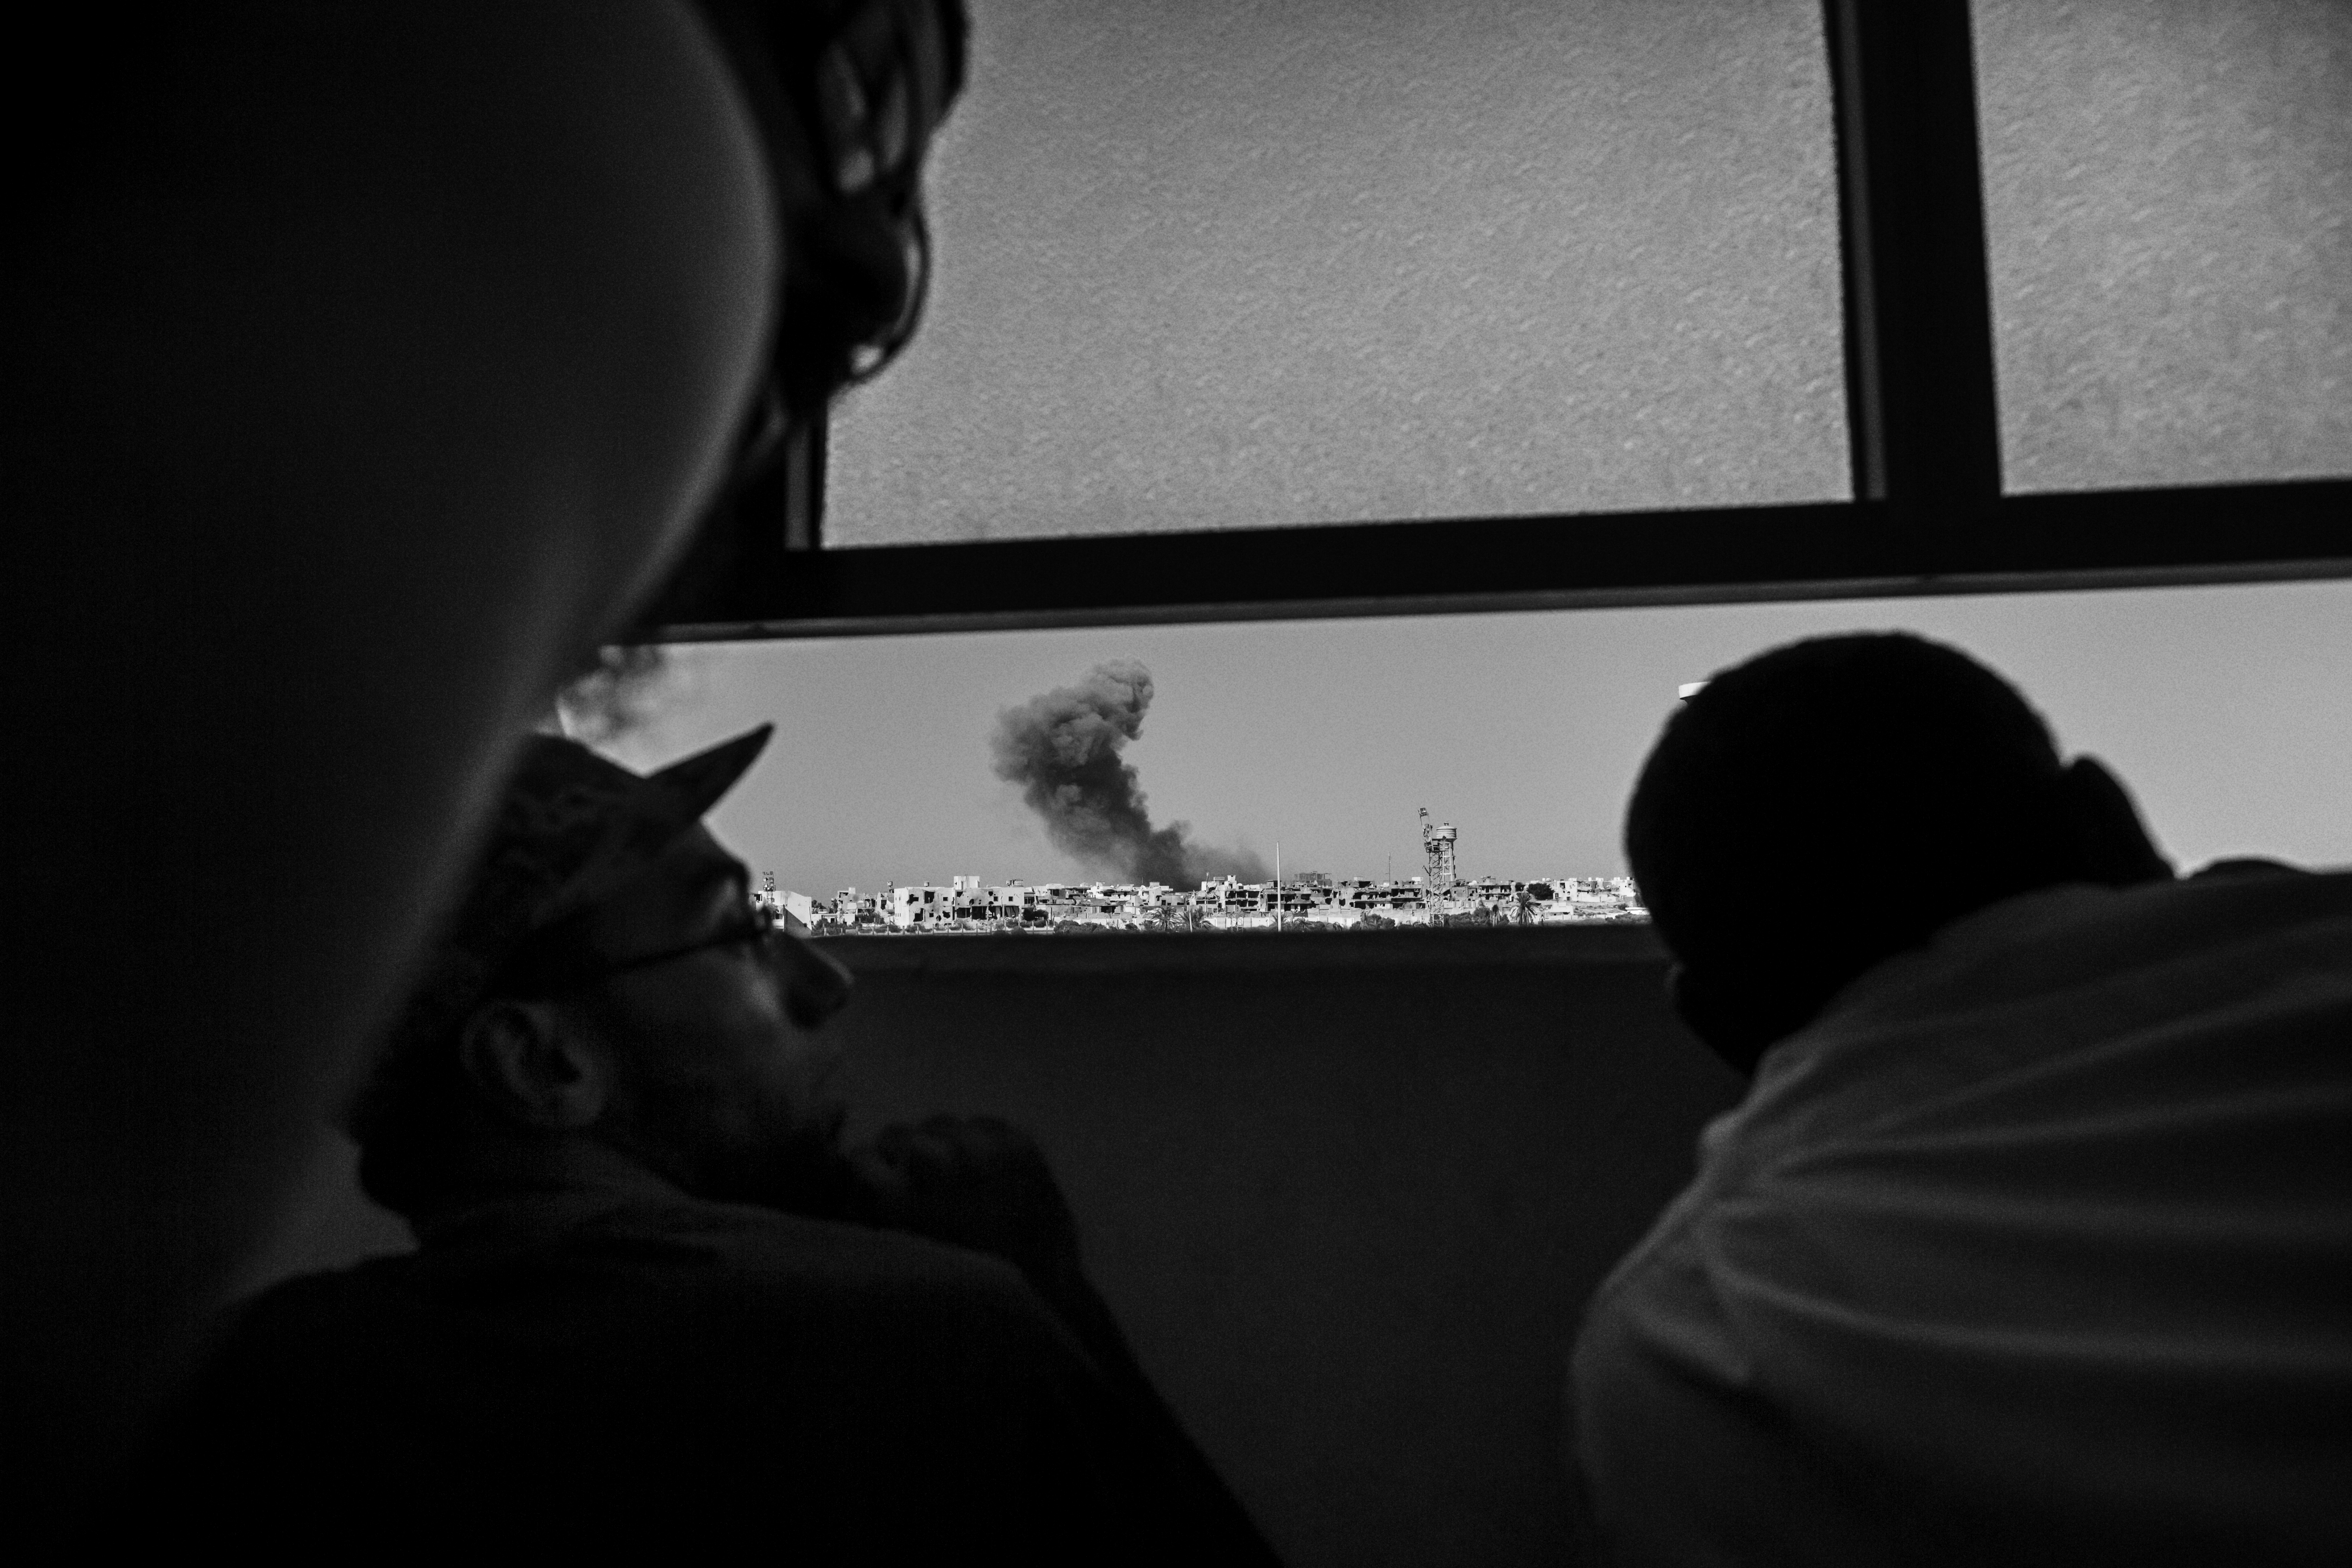 Members of the Libyan forces, affiliated with the Tripoli government, watch an airstrike on ISIS positions in Sirte - September 2016.